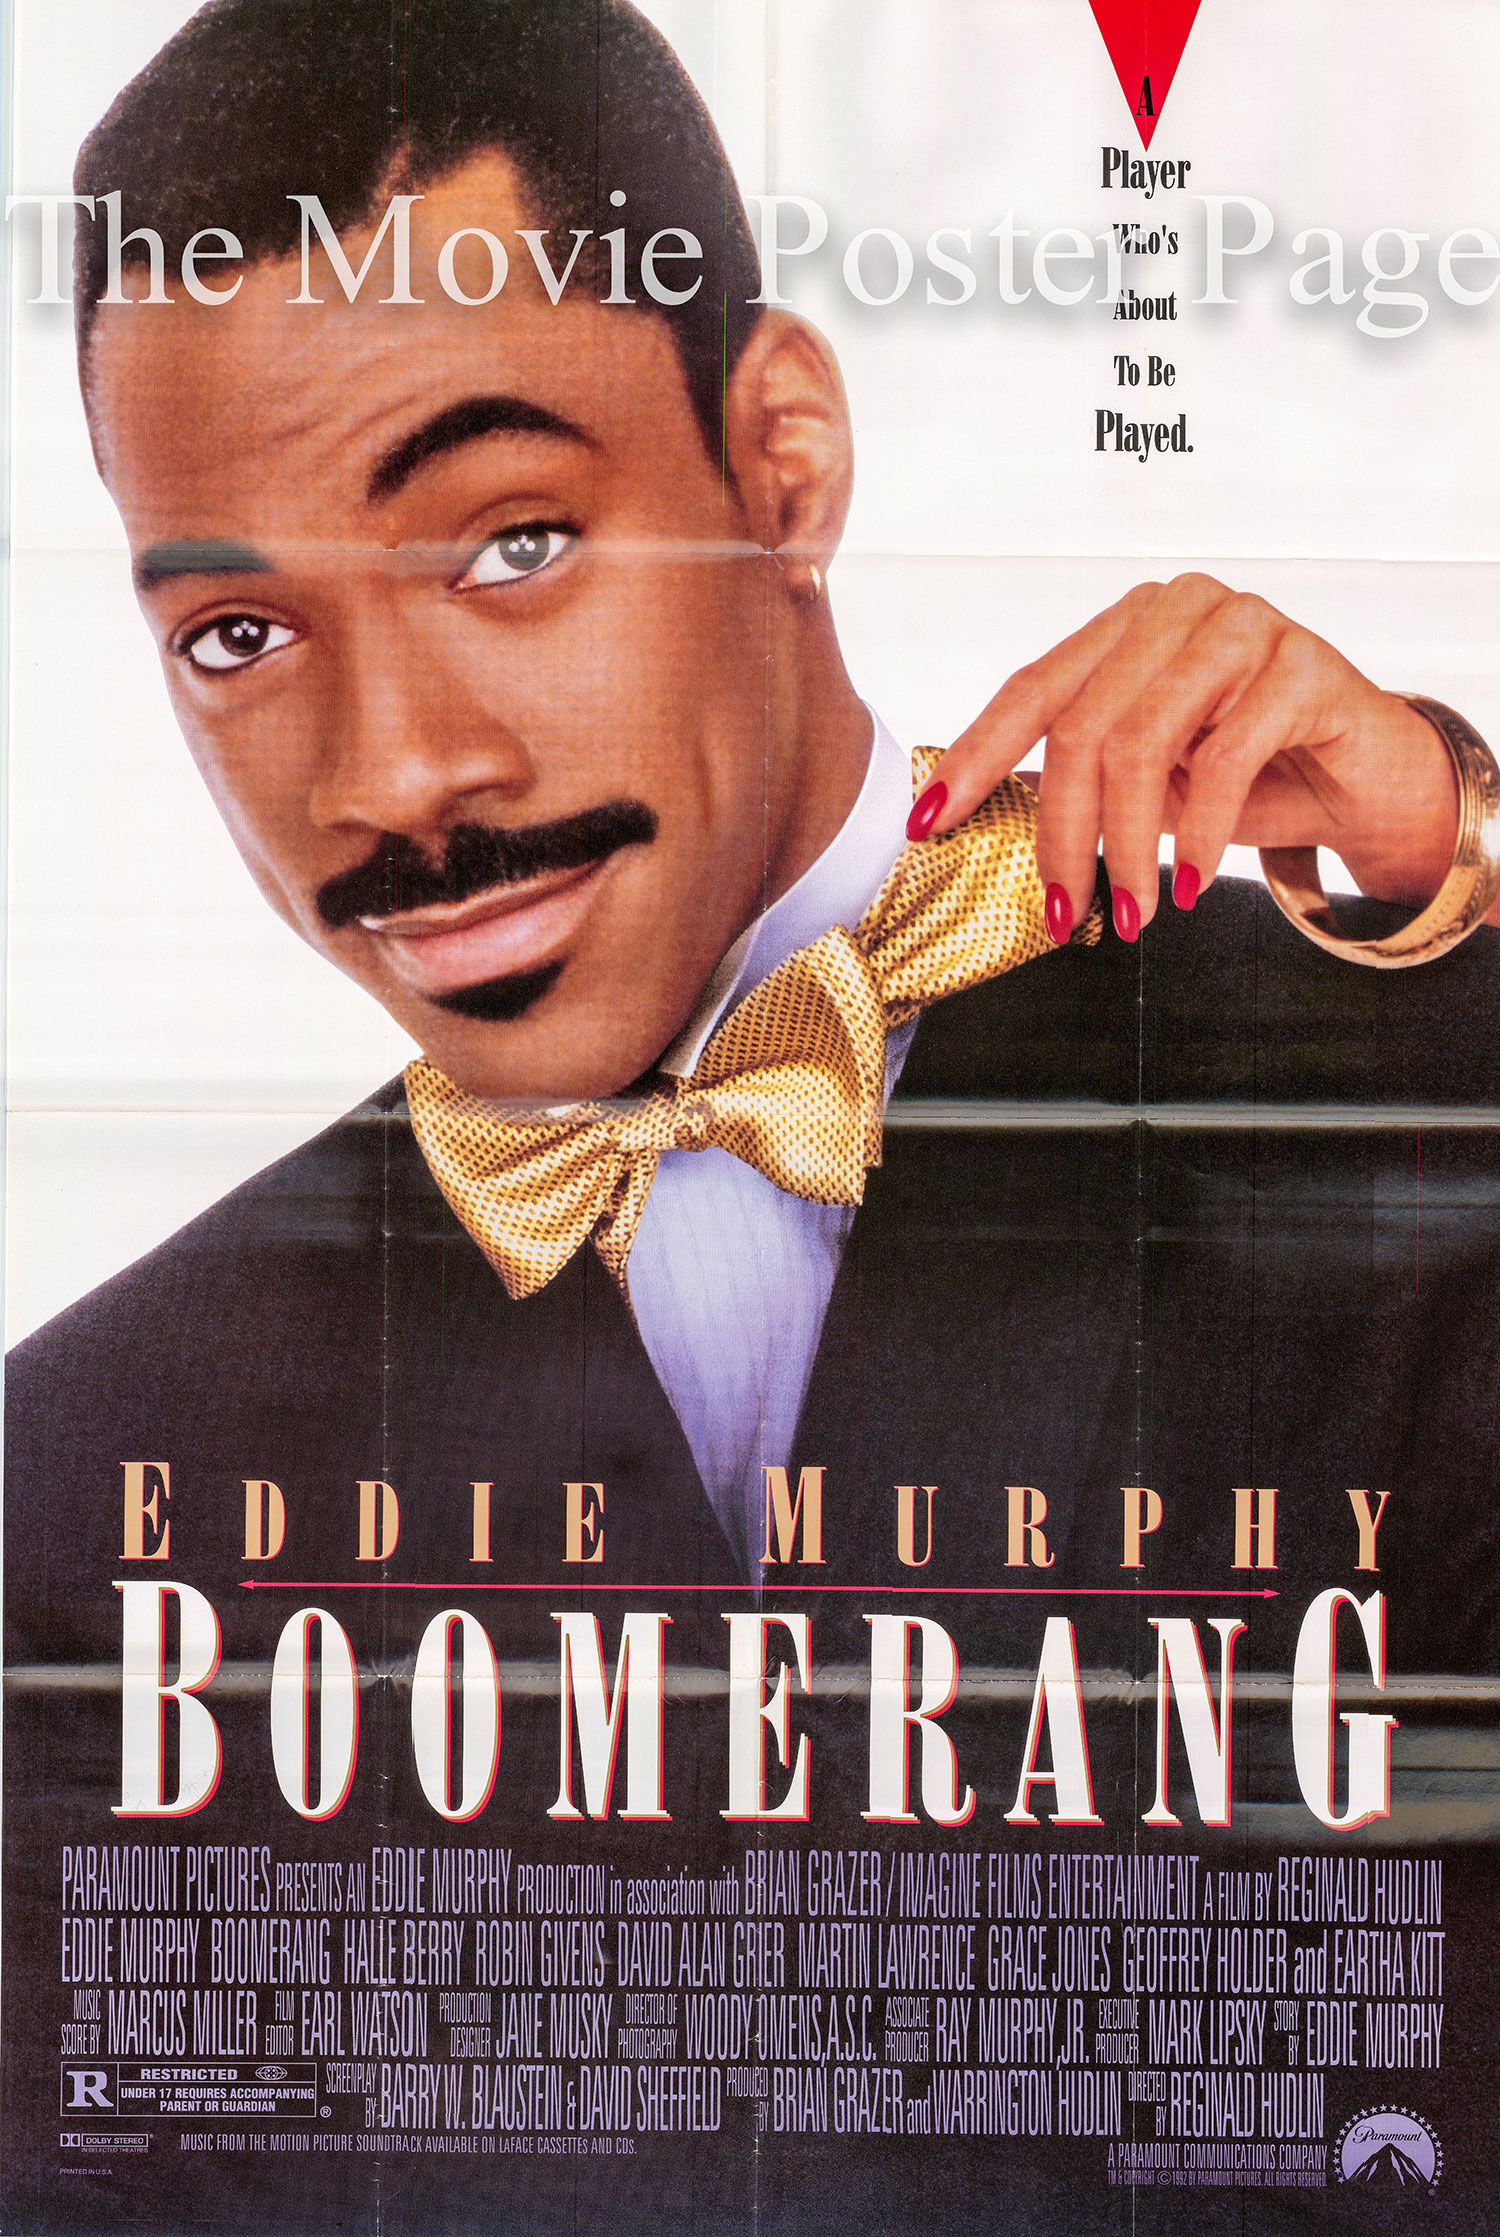 Pictured is a US one-sheet promotional poster for the 1992 Reginald Hudlin film Boomerang starring Eddie Murphy.